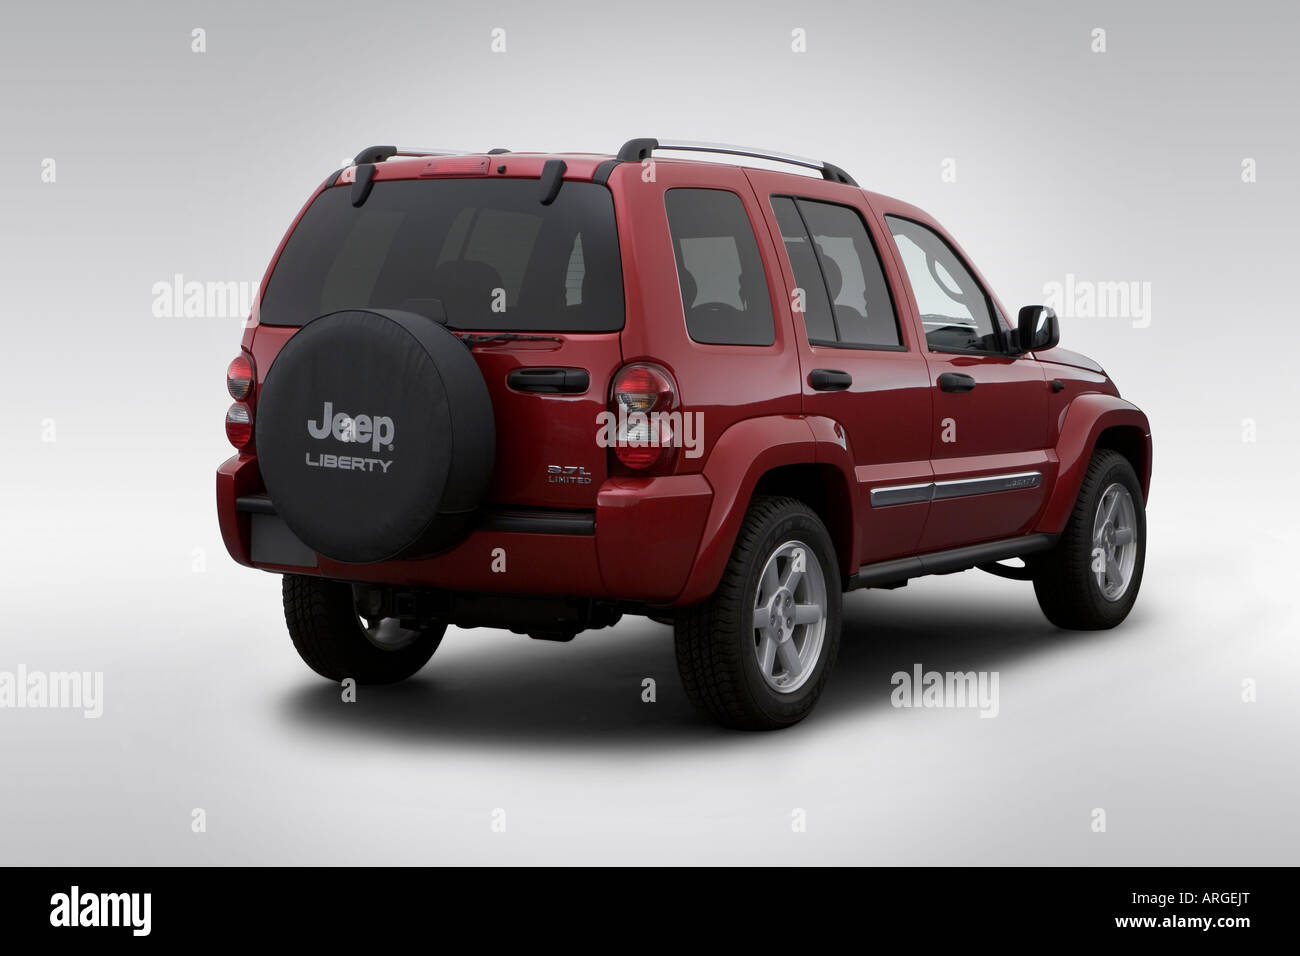 2007 Jeep Liberty Limited In Red   Rear Angle View